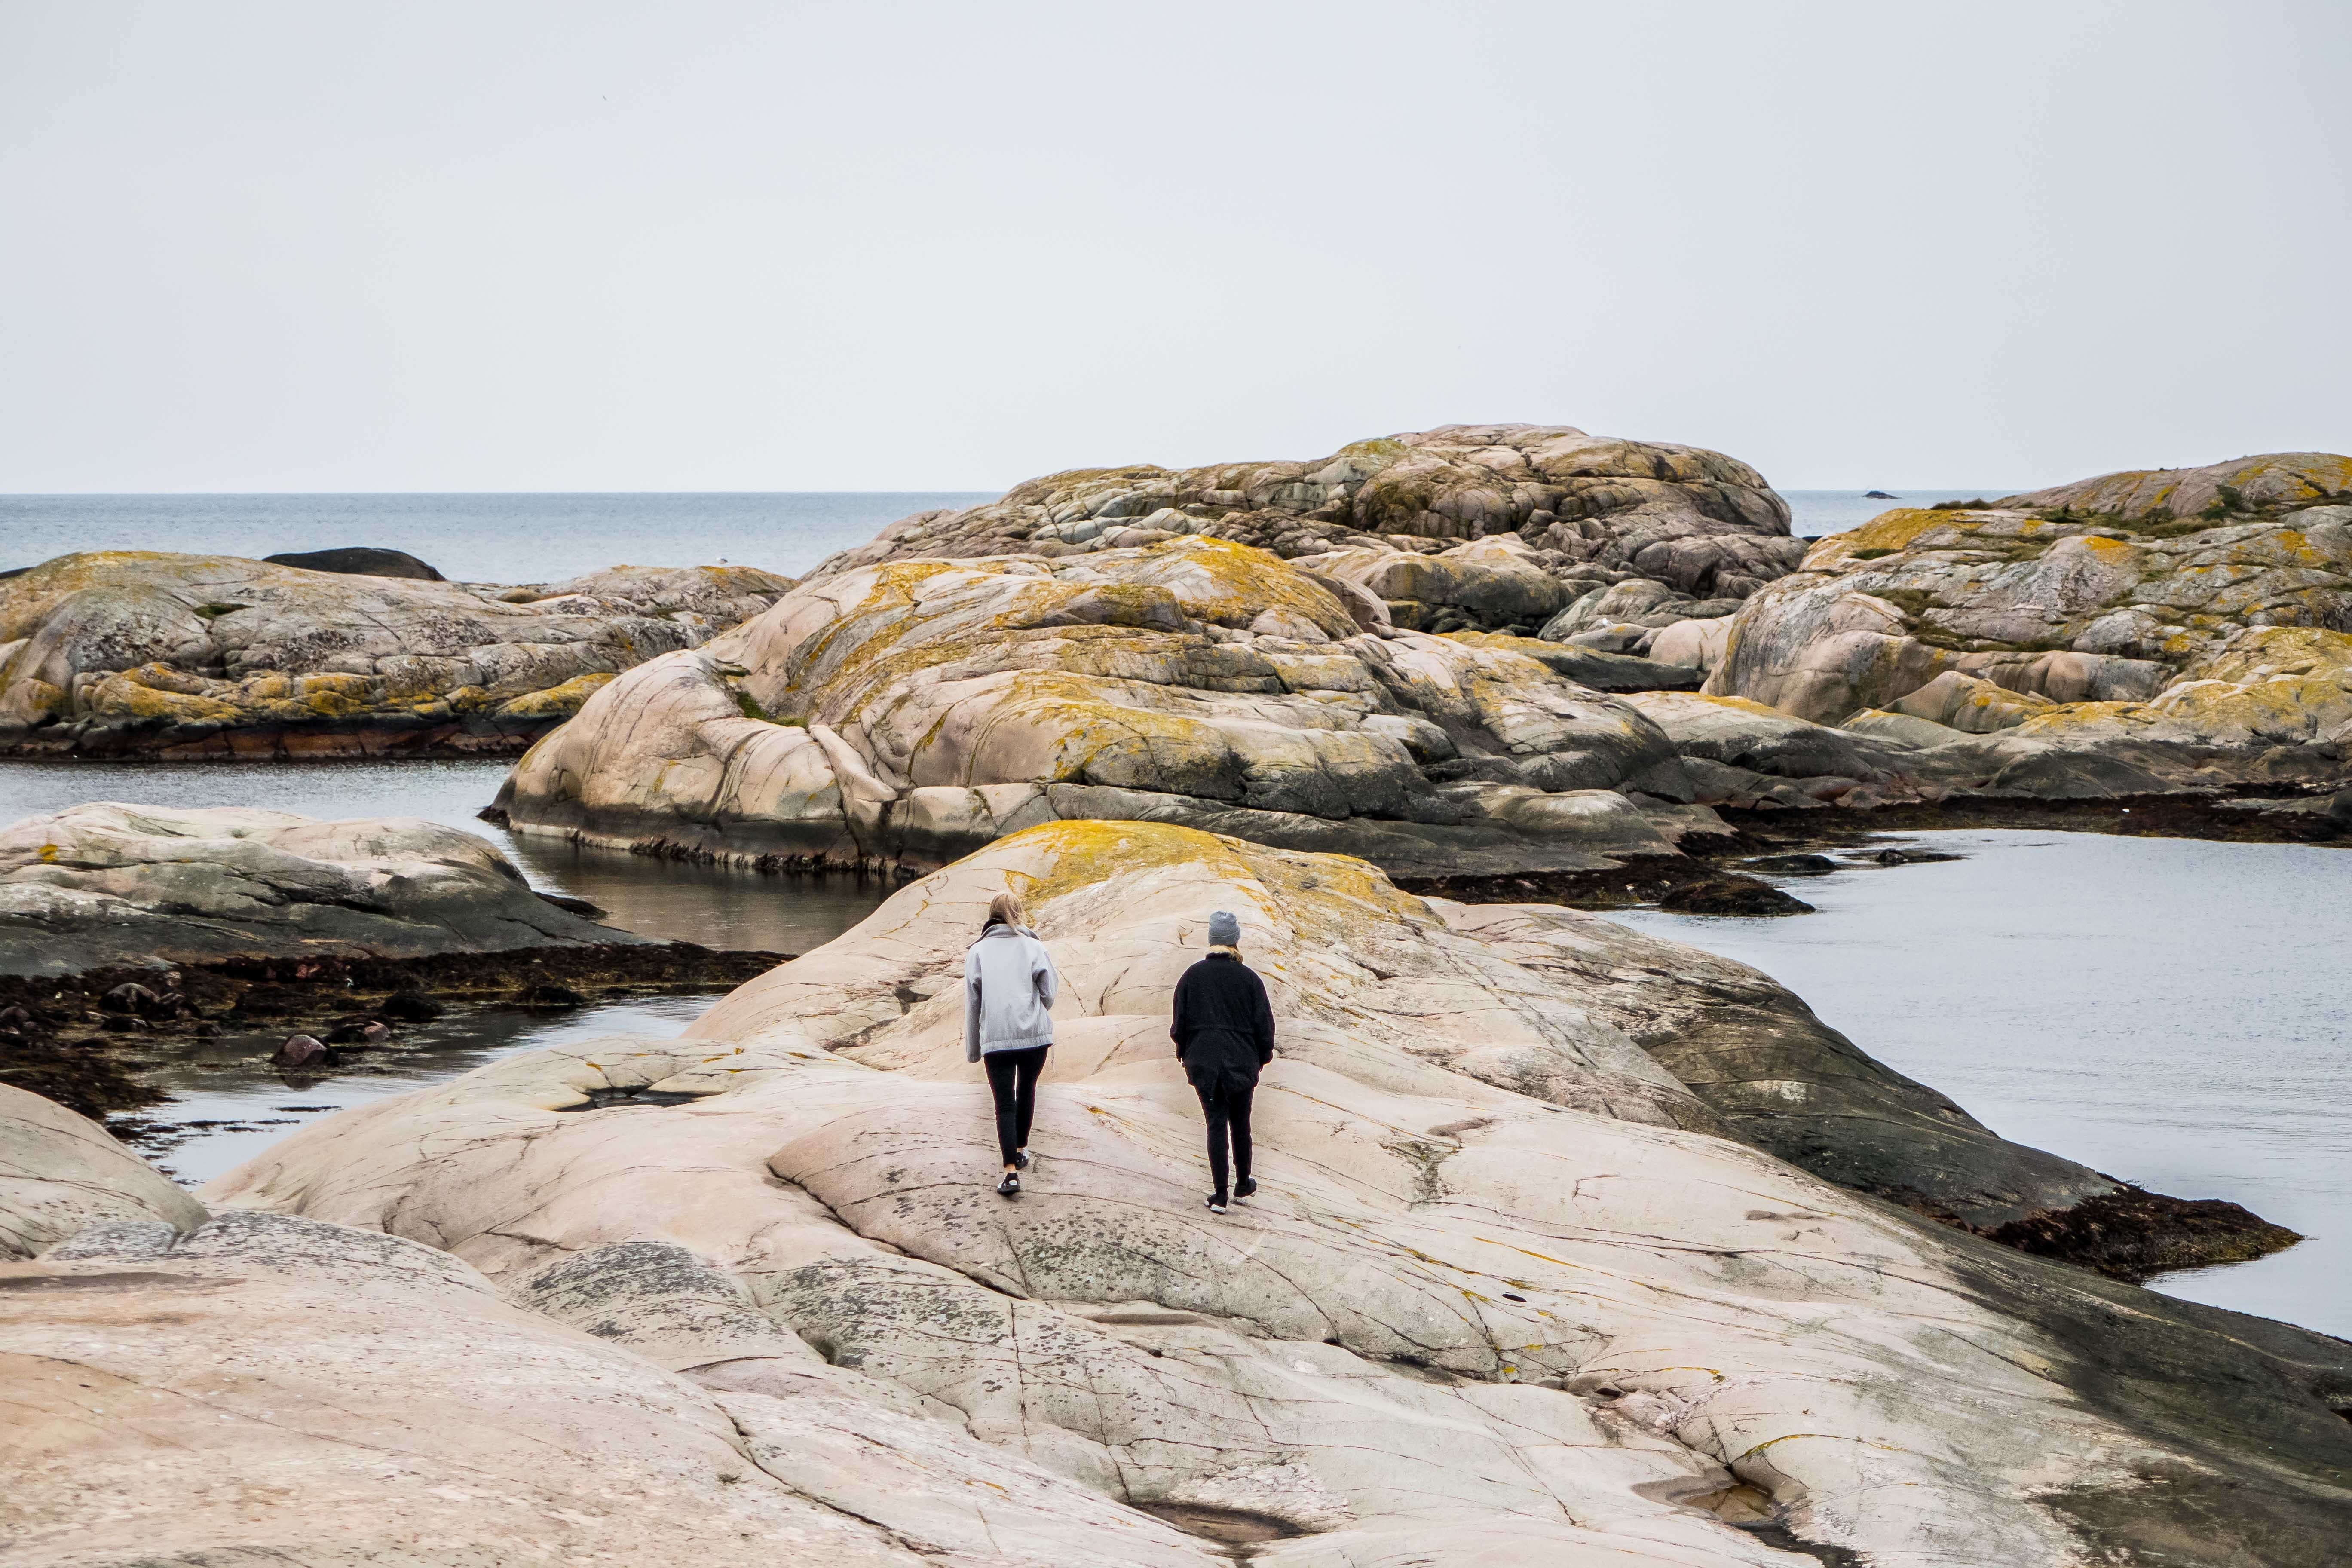 A duo strolling on a rocky shoreline during low tide